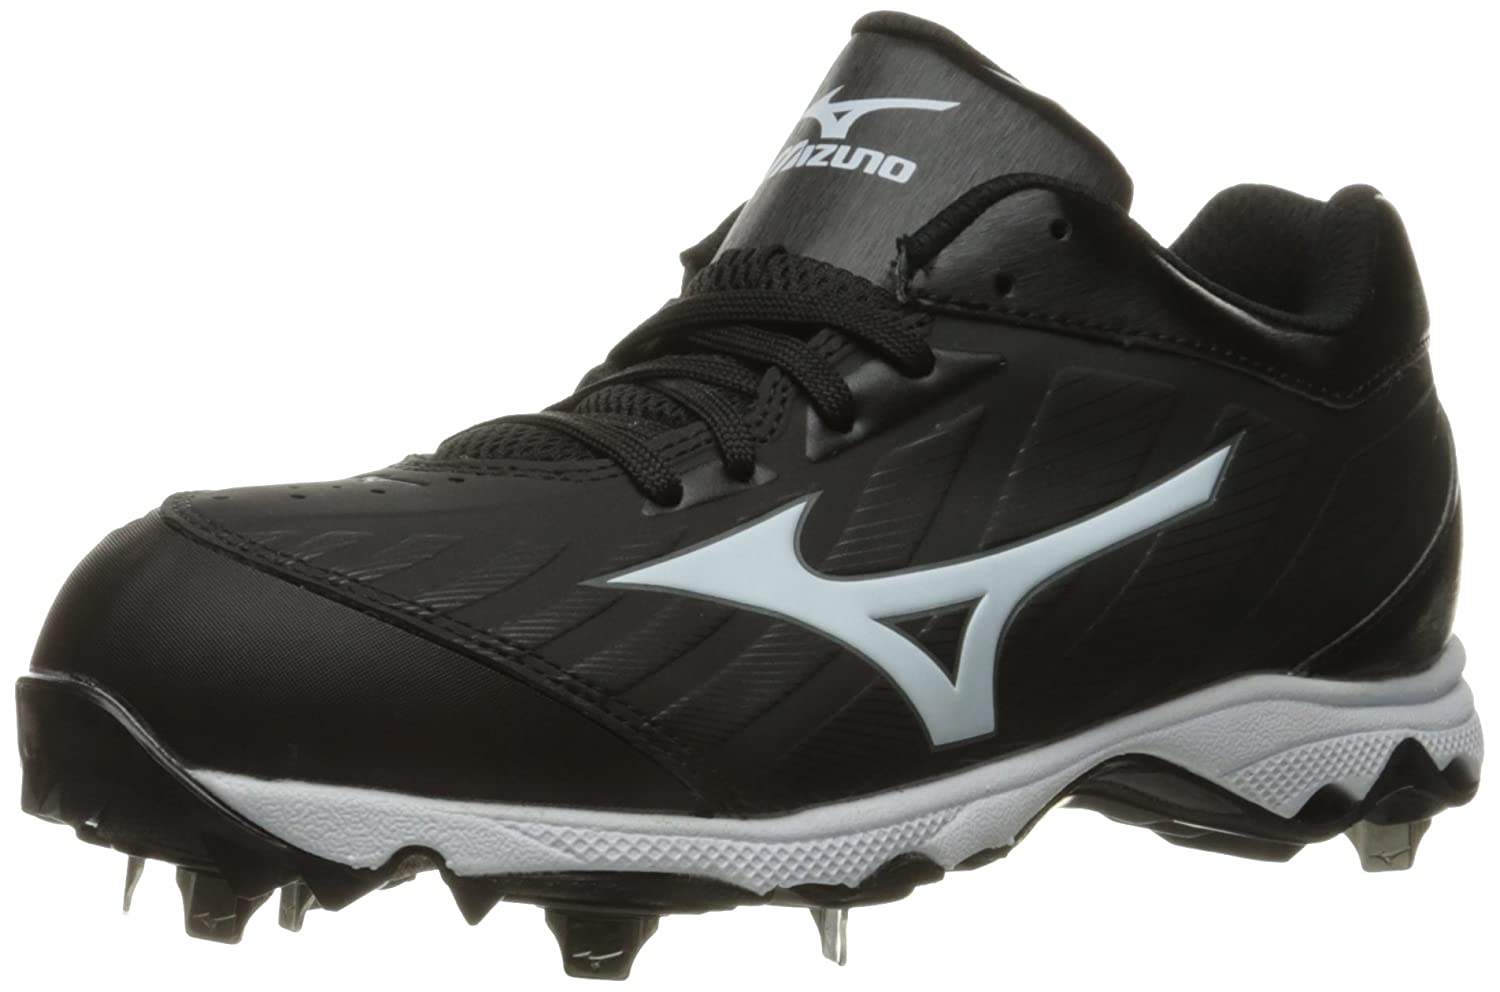 Mizuno Womens 9-Spike Advanced Sweep 3 Low Top Lace Up Baseball Shoes B01HQE1REA 9 C/D US|ブラック/ホワイト ブラック/ホワイト 9 C/D US